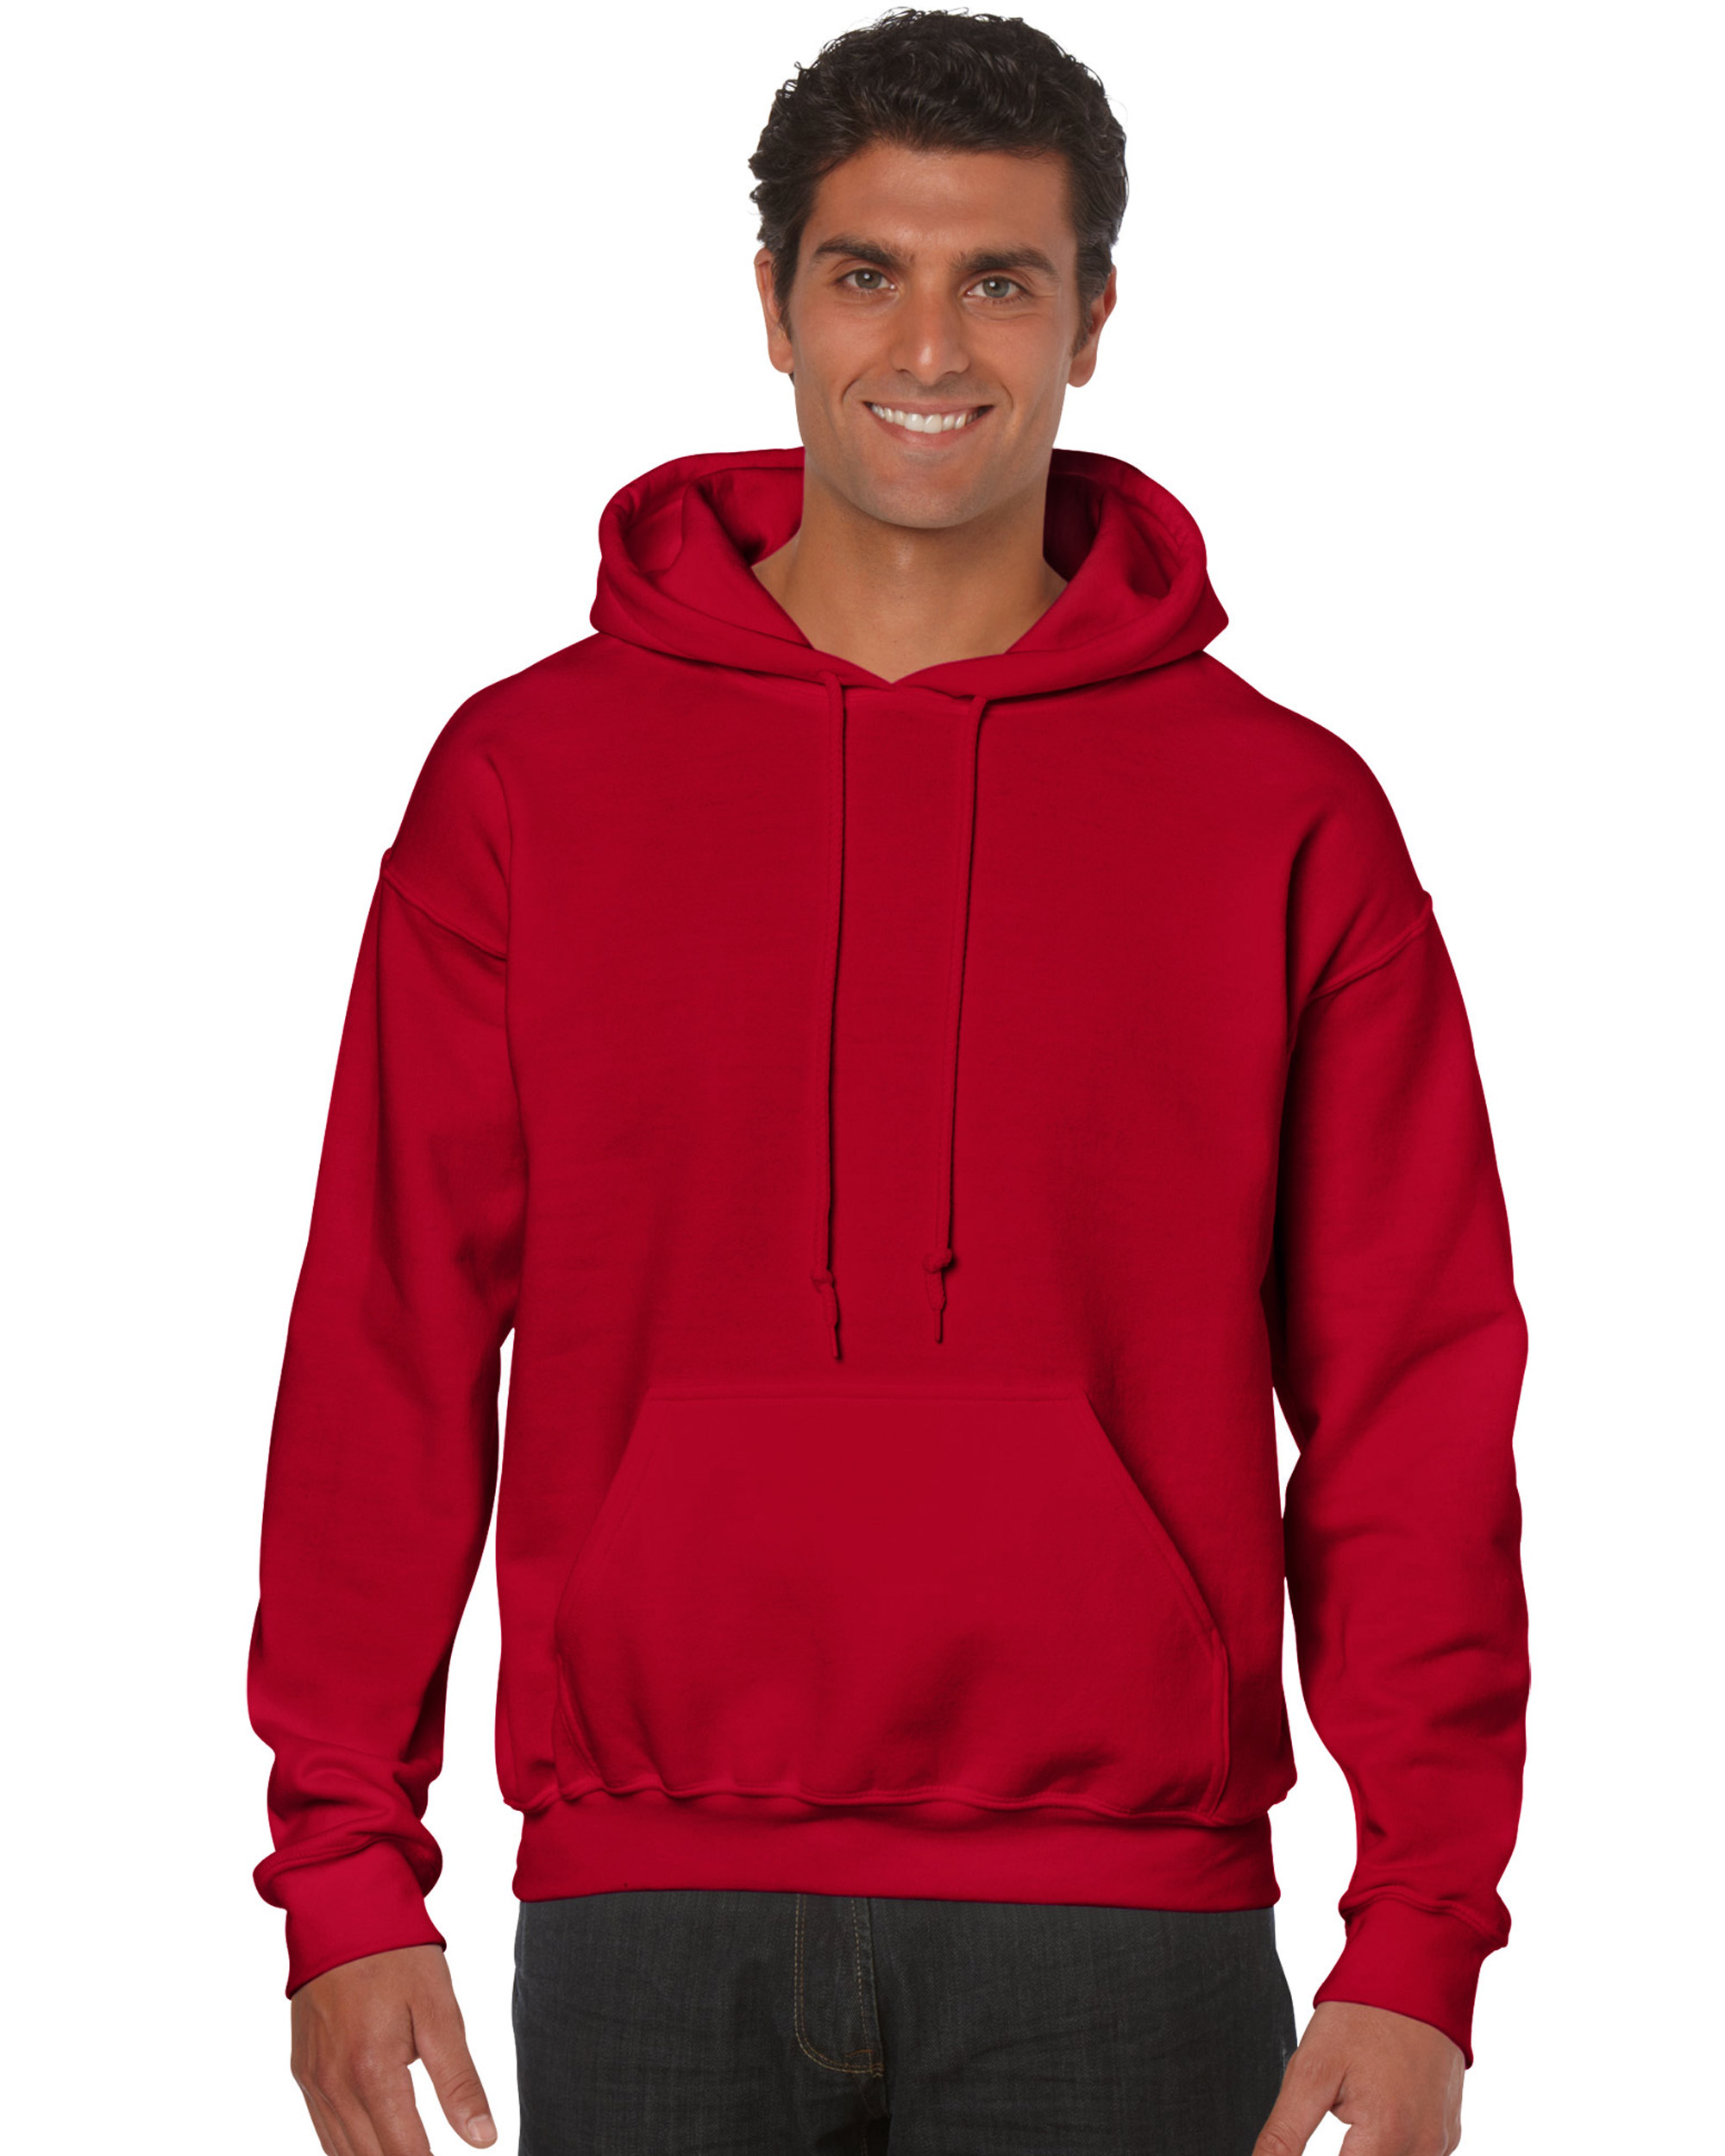 Bluza Heavy Blend Hooded Adult GILDAN 18500 - Gildan_18500_28 - Kolor: Garnet